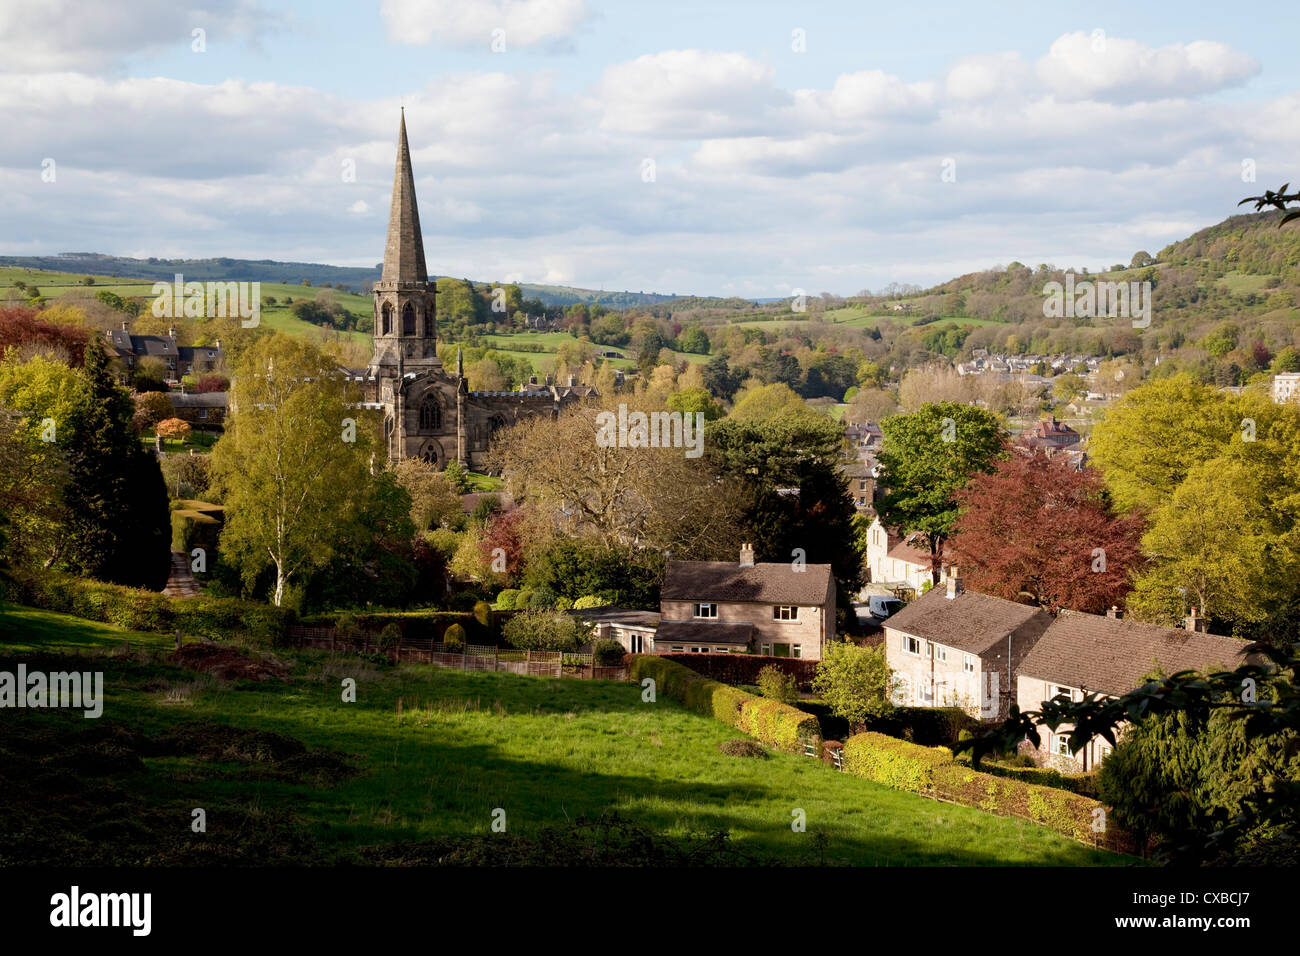 View of Parish Church and town, Bakewell, Derbyshire, England, United Kingdom, Europe - Stock Image